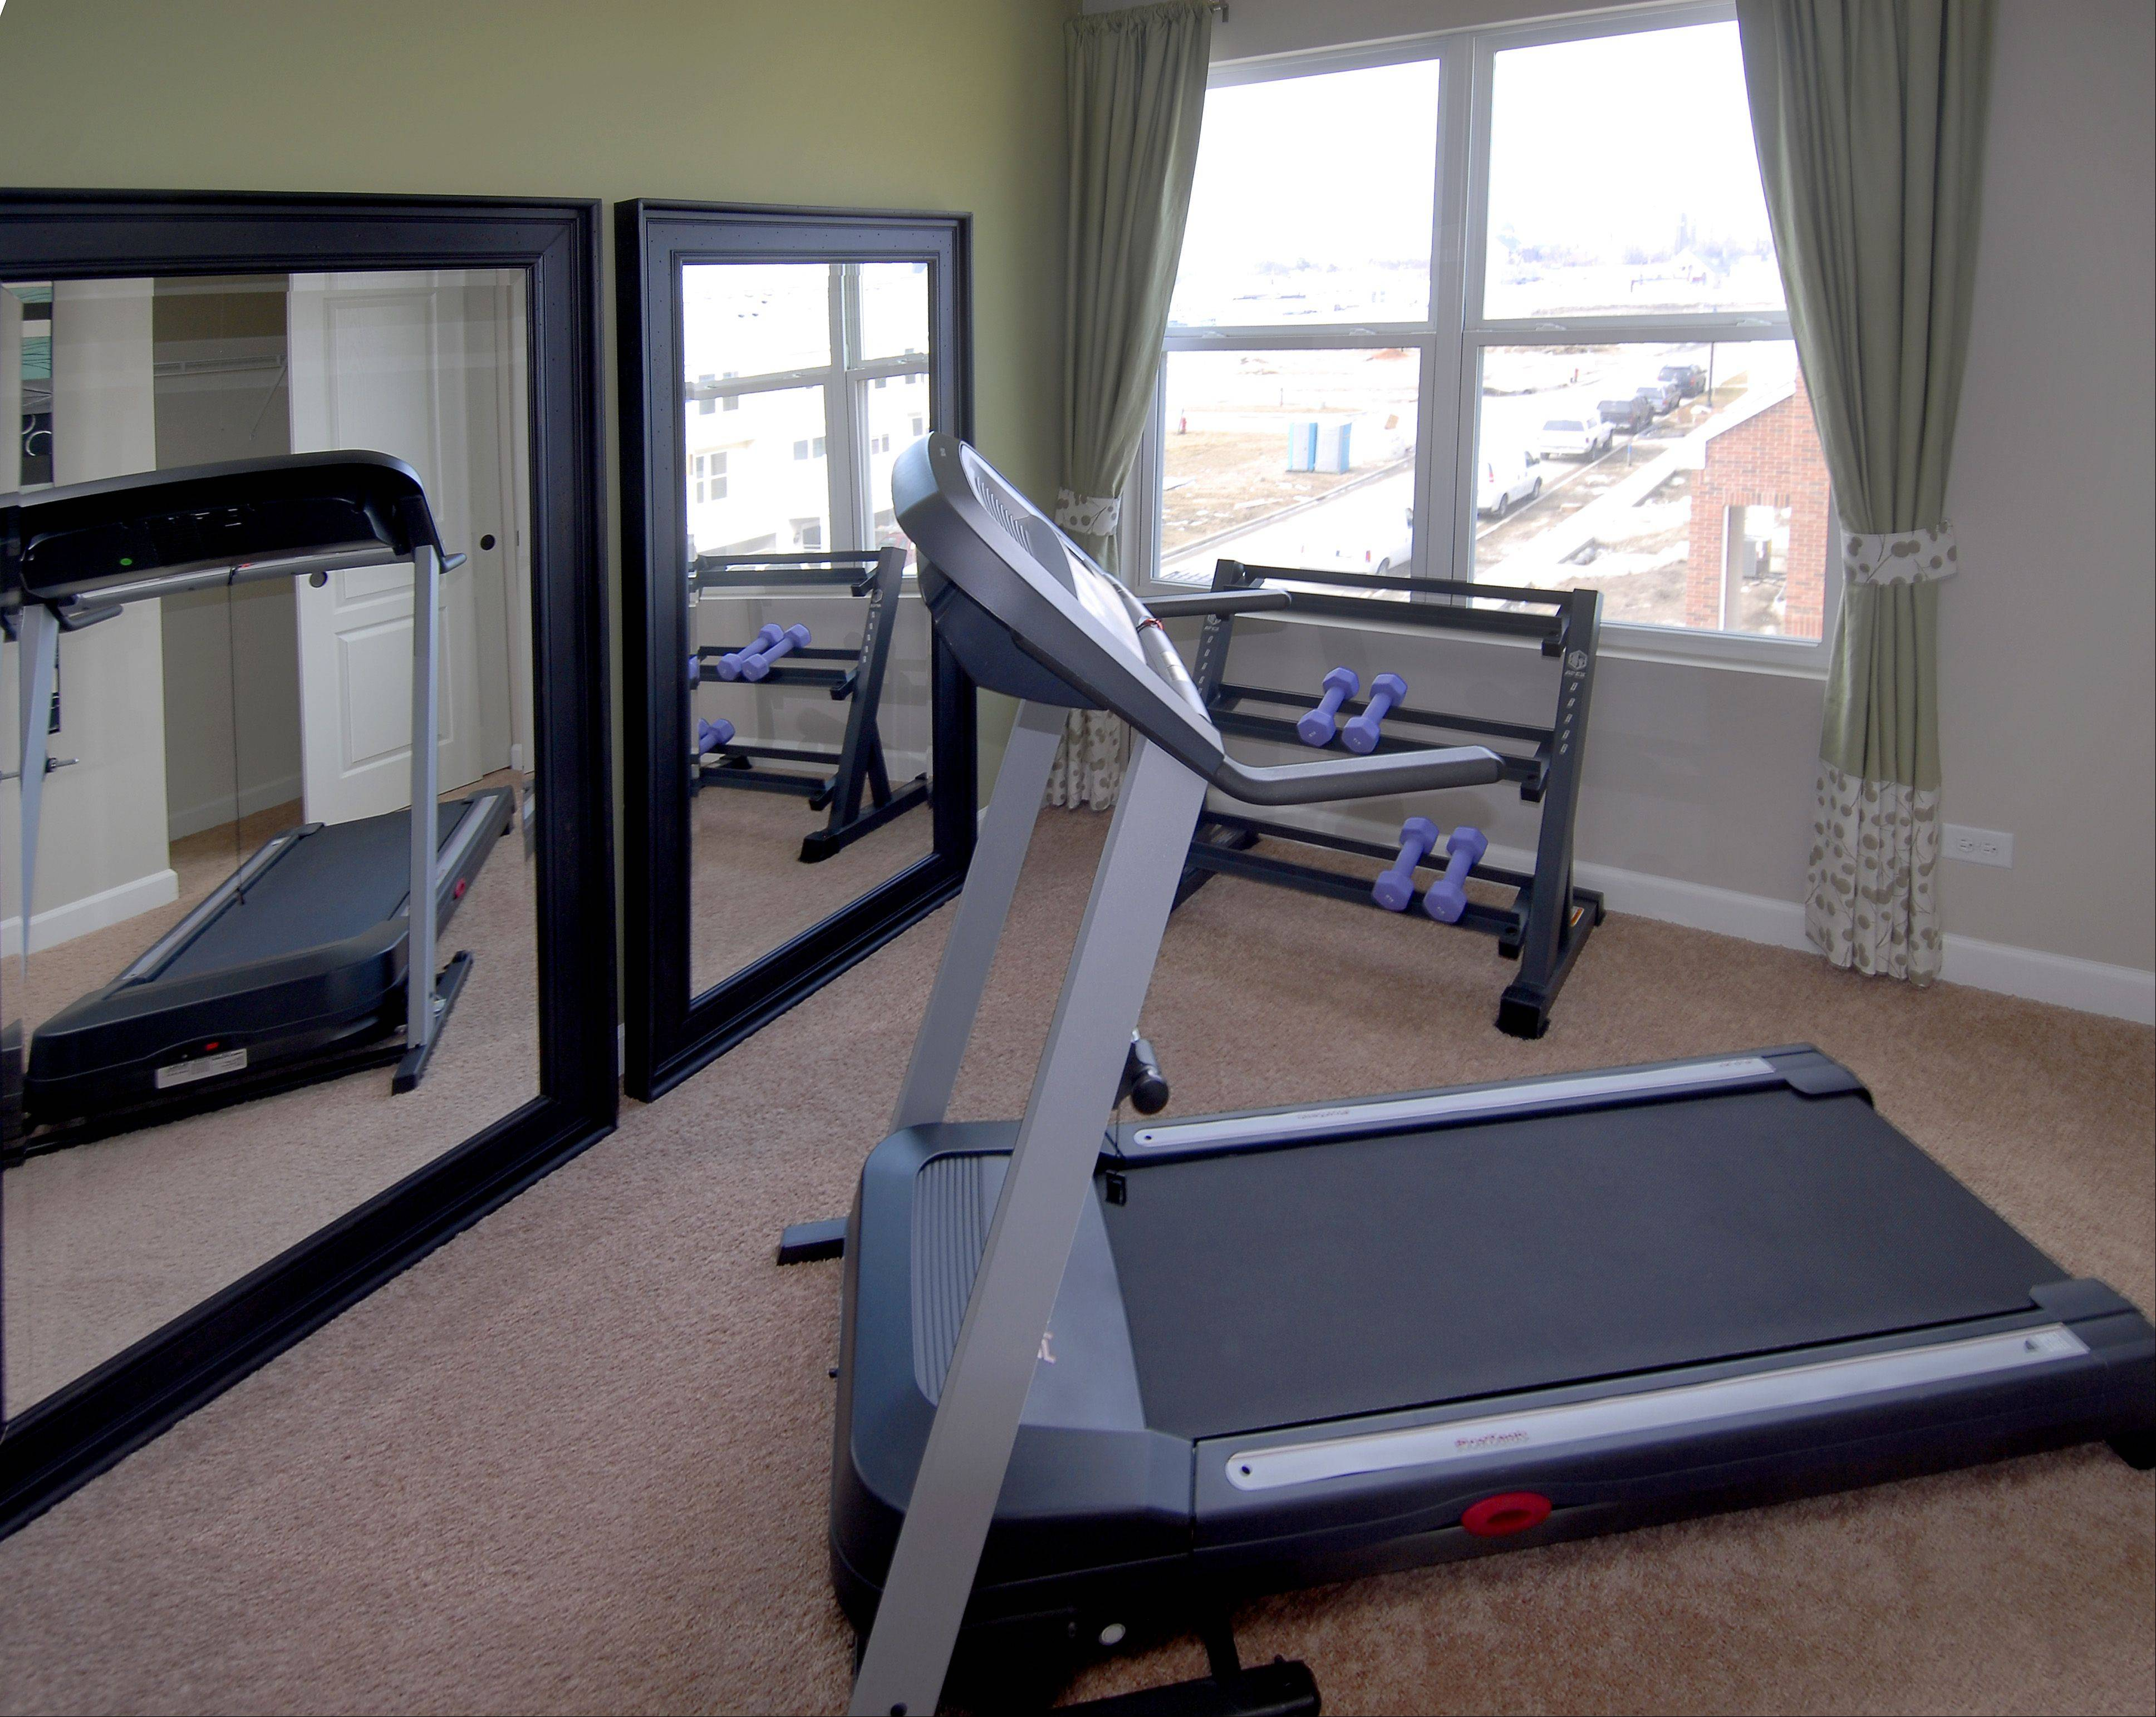 A spare bedroom in the Providence model at Arlington Crossings is furnished as a workout room.